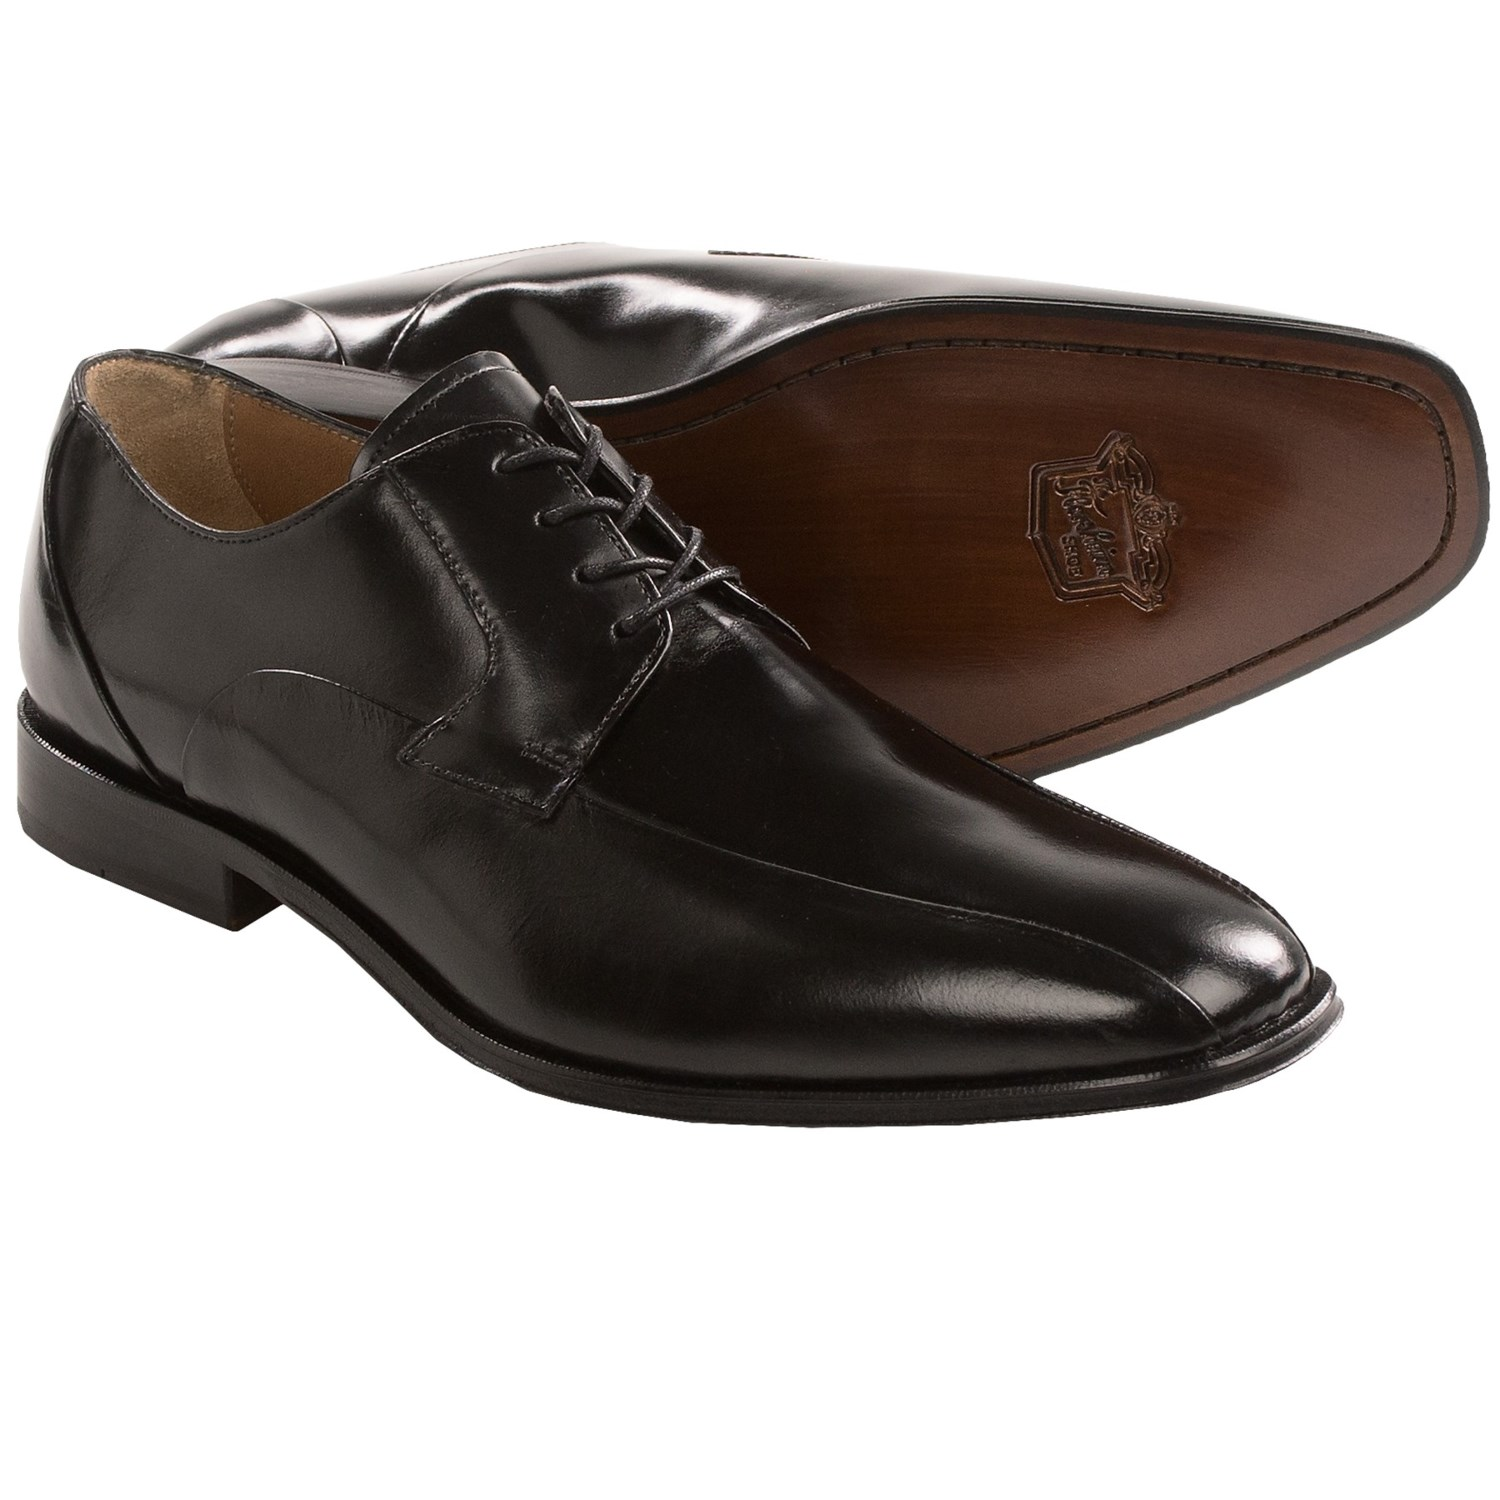 How To Wear Florsheim Oxford Shoes